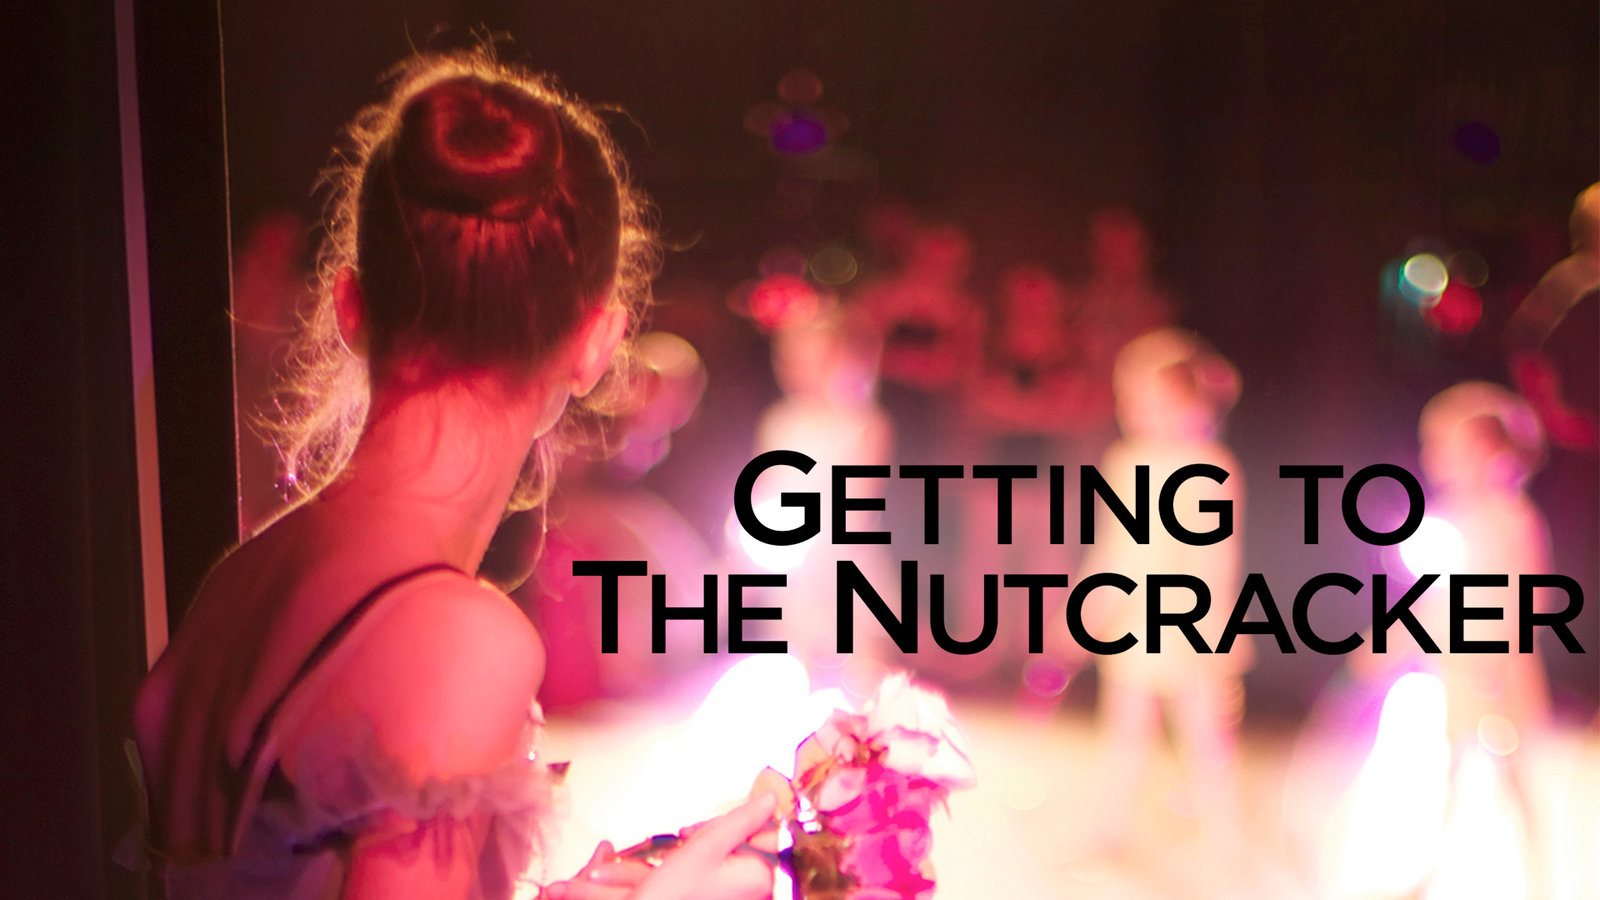 Getting to the Nutcracker - The Making of a Christmas Classic